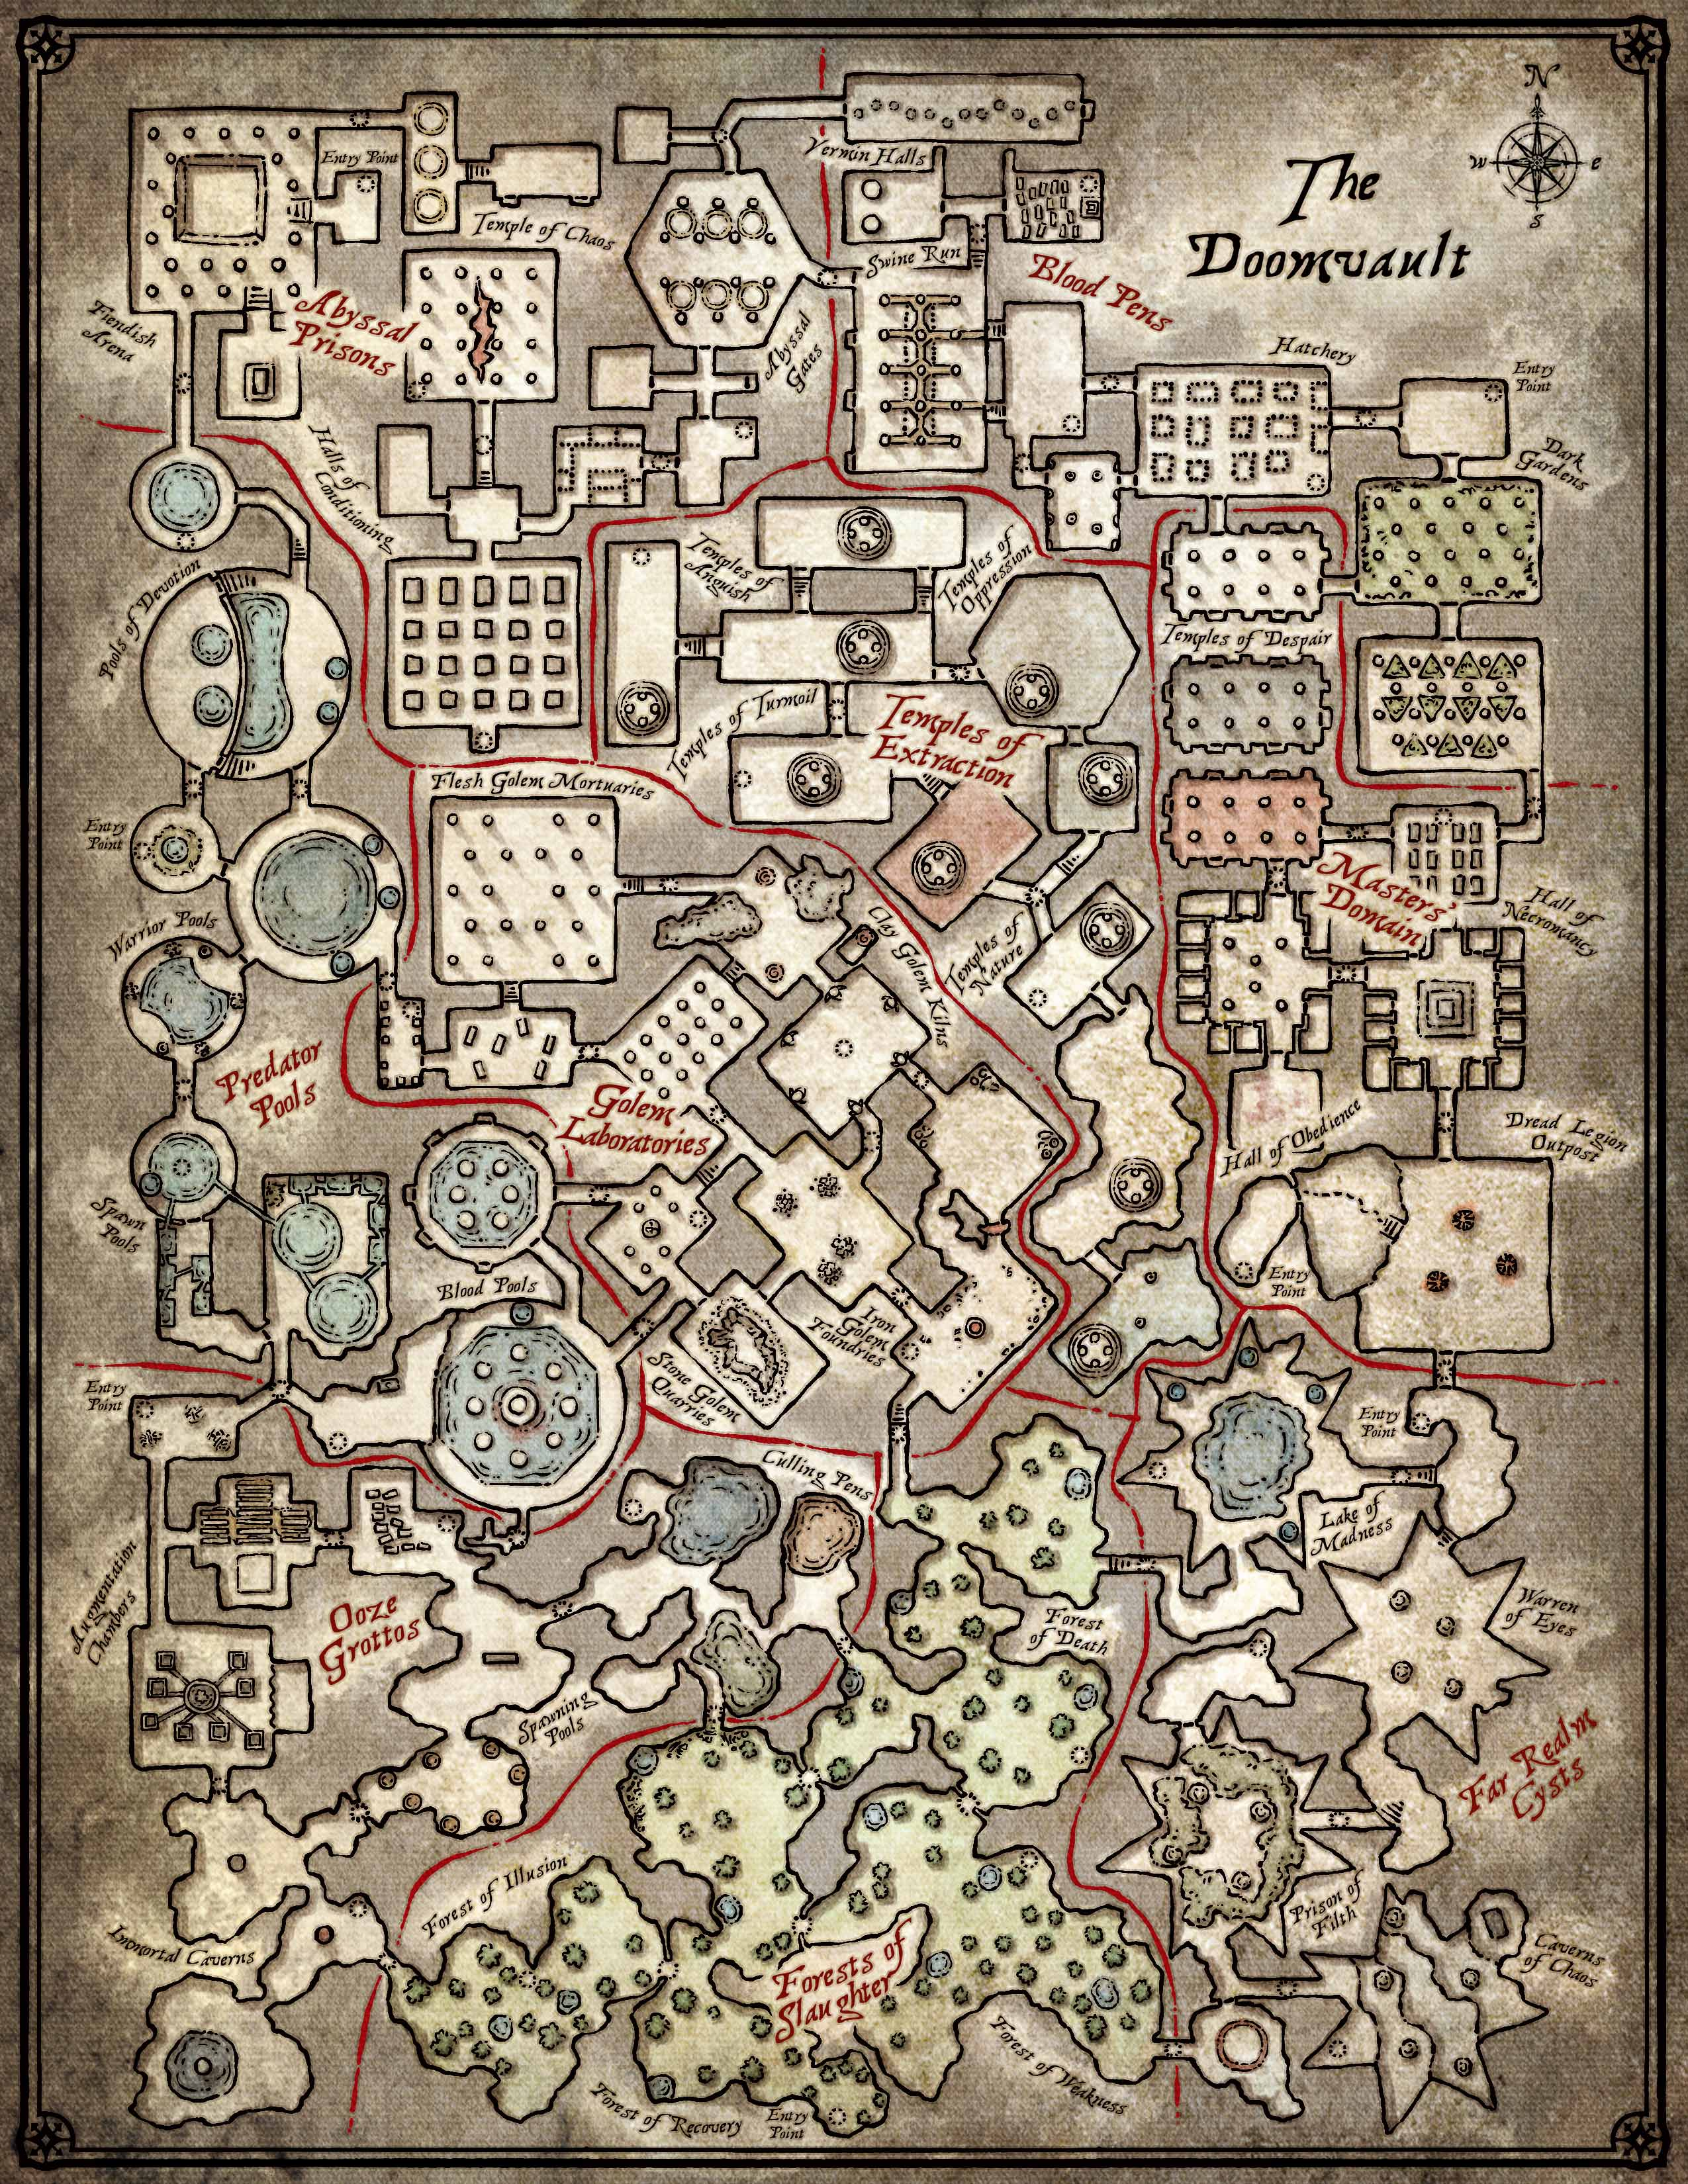 Princes Of The Apocalypse Maps Pdf : princes, apocalypse, Index, /~prophet/lock/DnD, Edition/